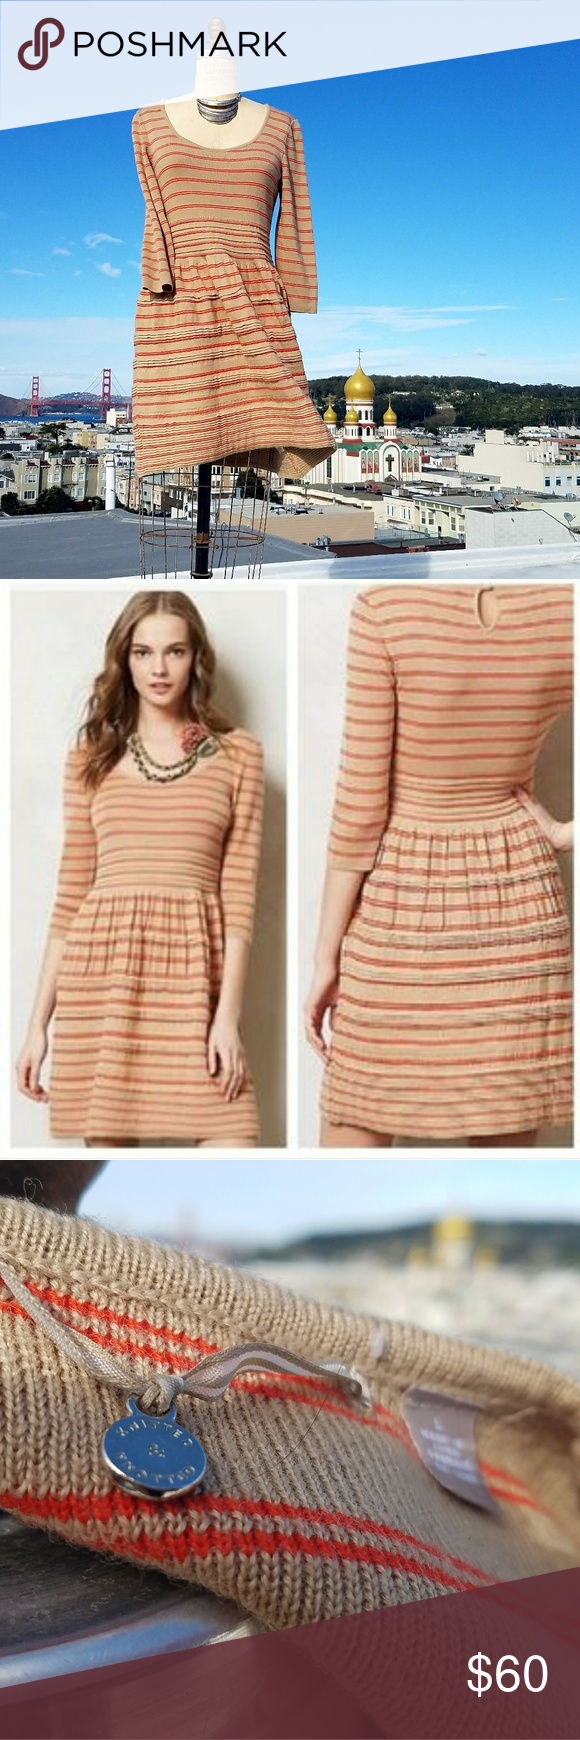 ae45dcd1b22 Anthropologie Knitted   Knotted Elodie Dress